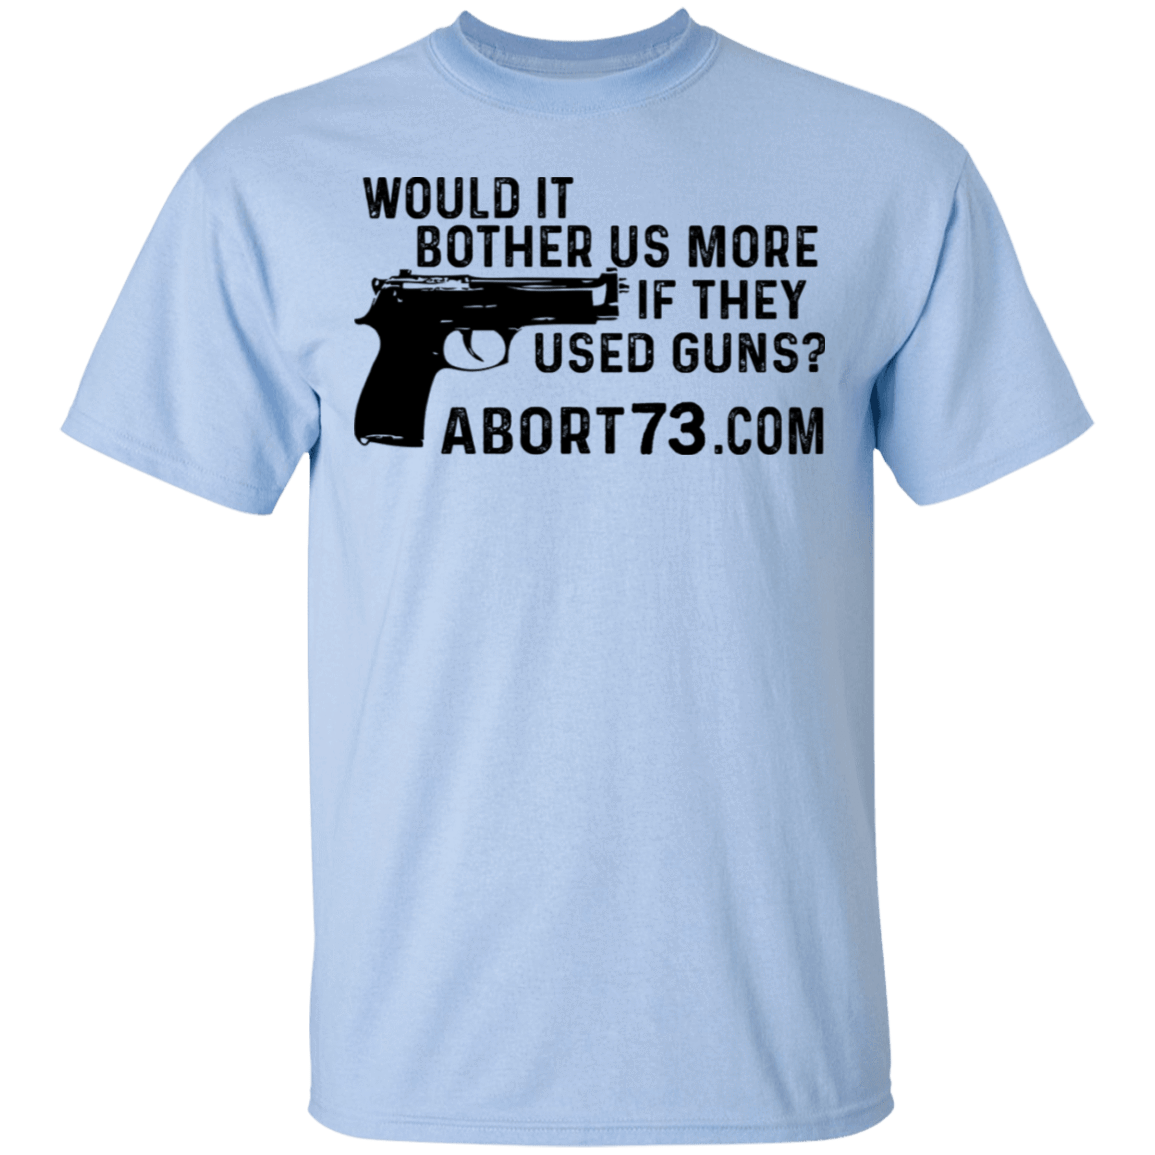 Would It Bother Us More if They Used Guns T-Shirt, Hoodies, Tank 22-9800-79463679-47430 - Tee Ript